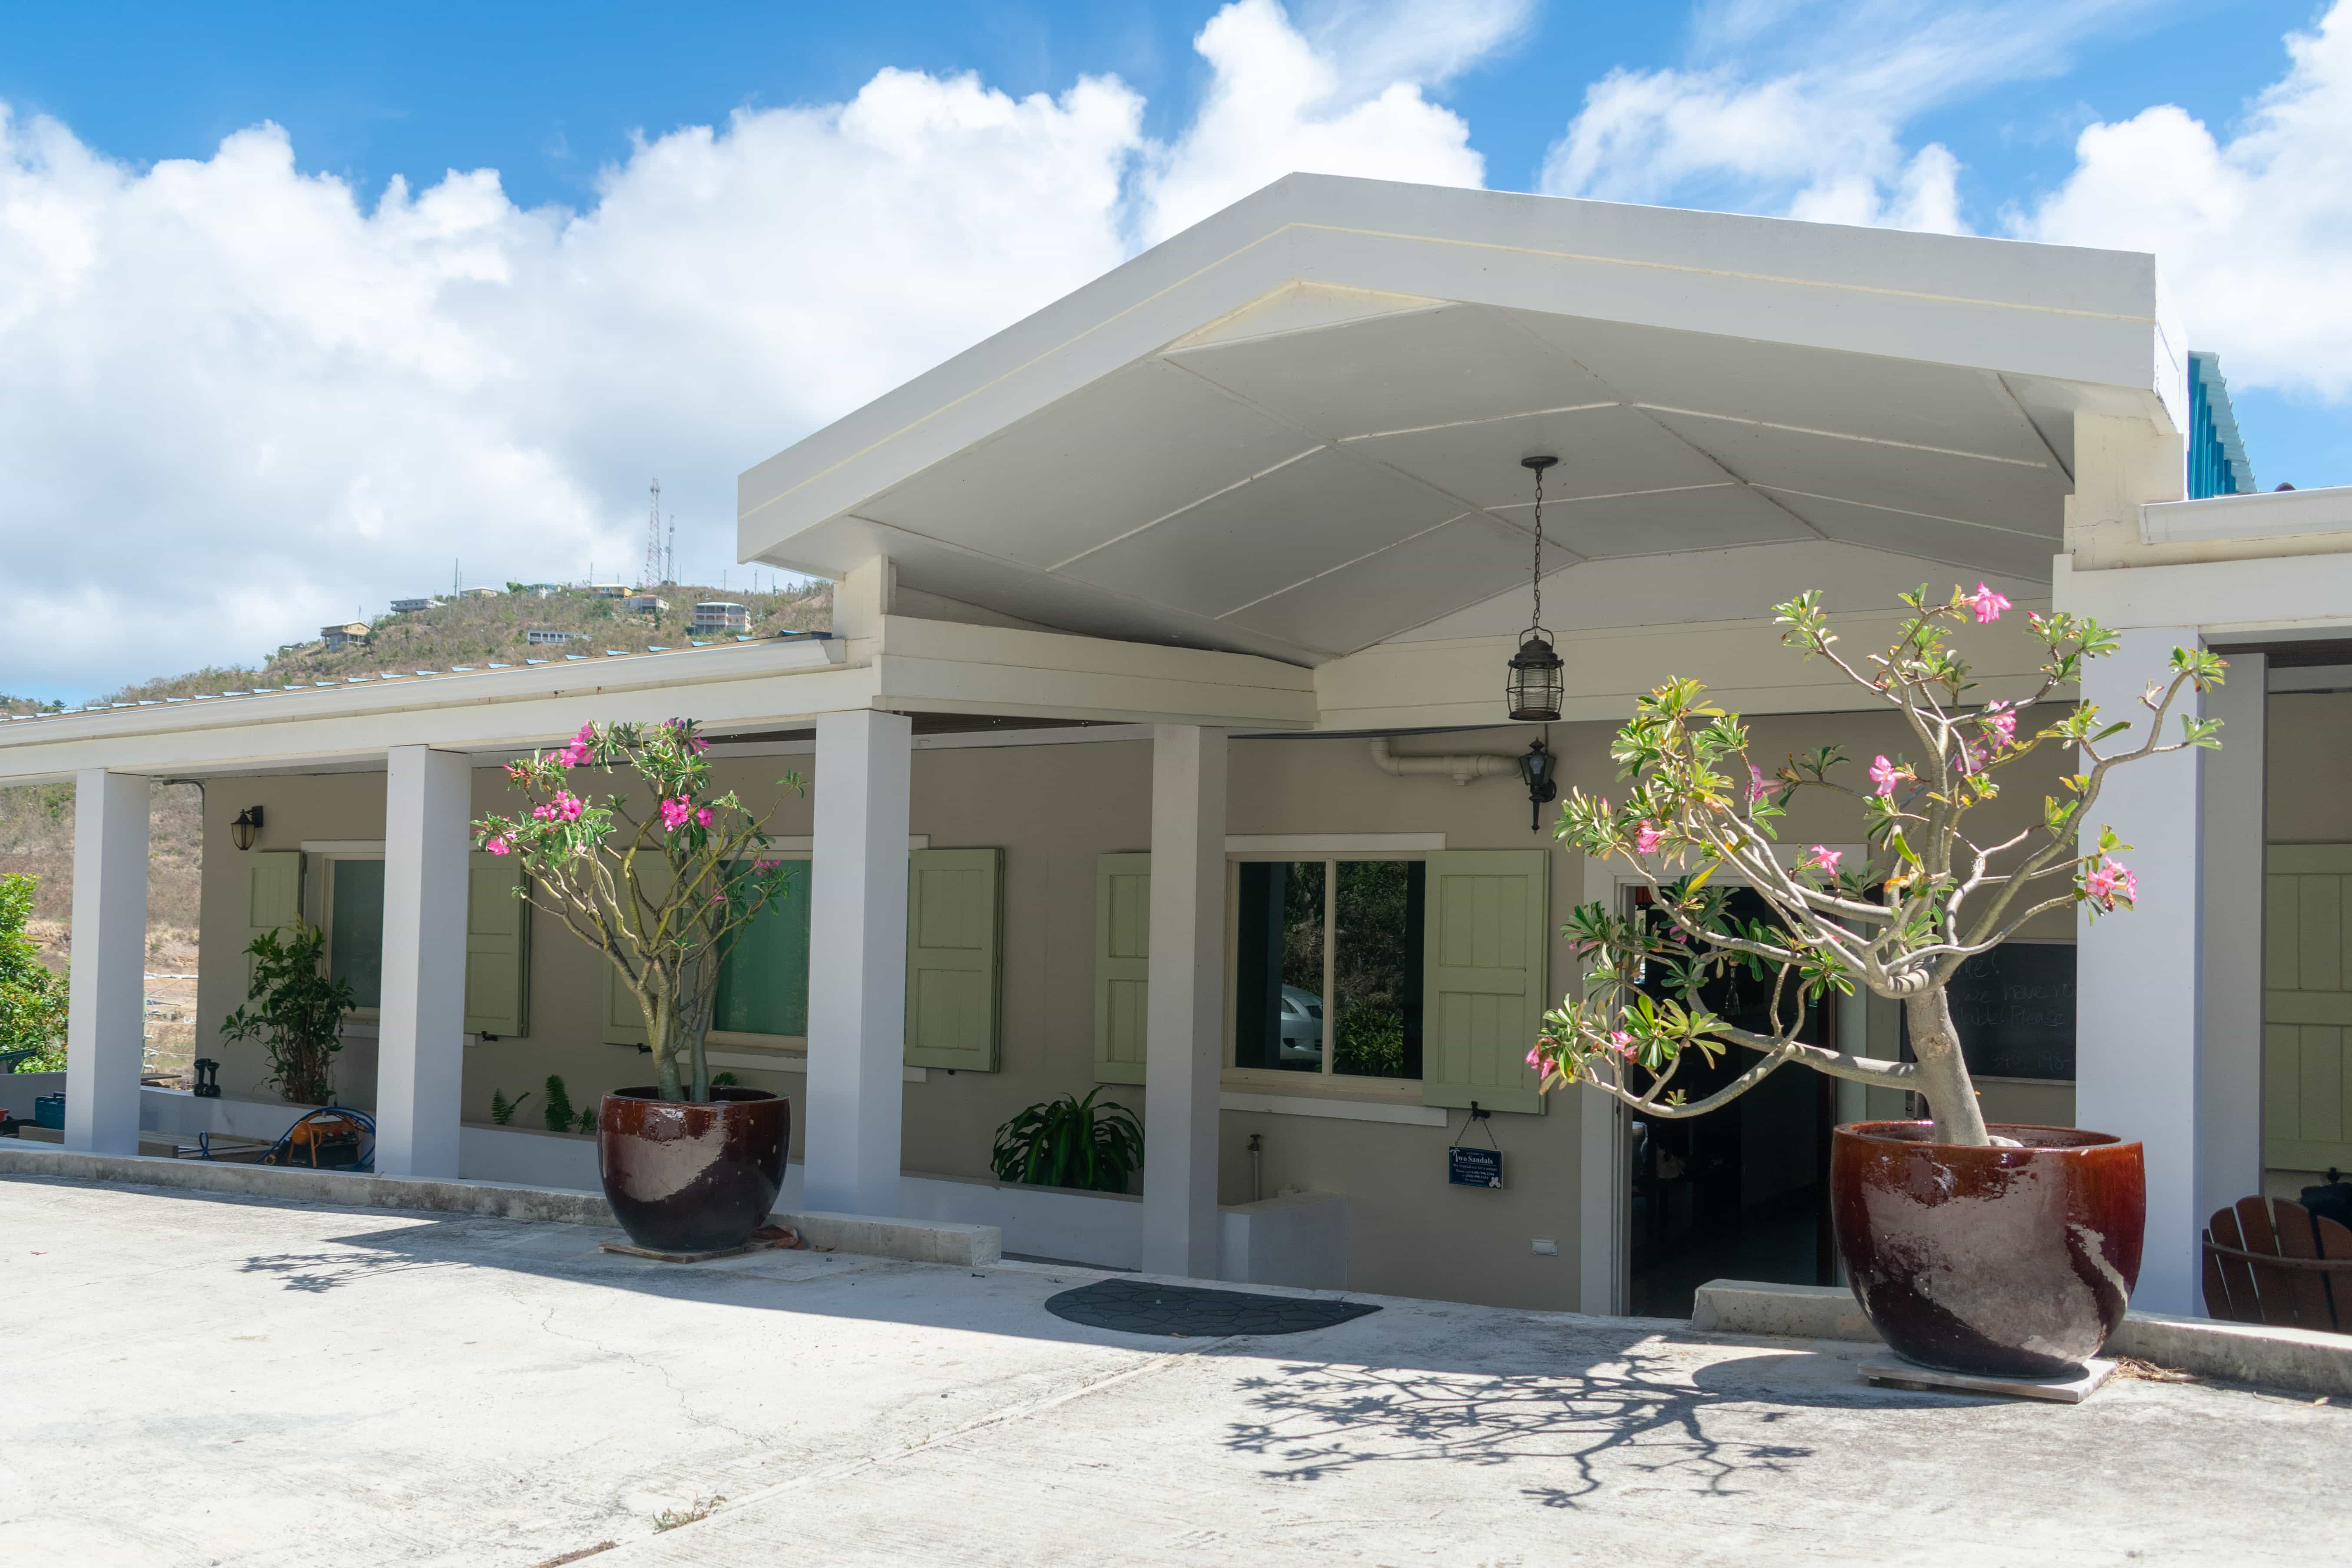 Two Sandals By The Sea B&B, St. Thomas | SBPR